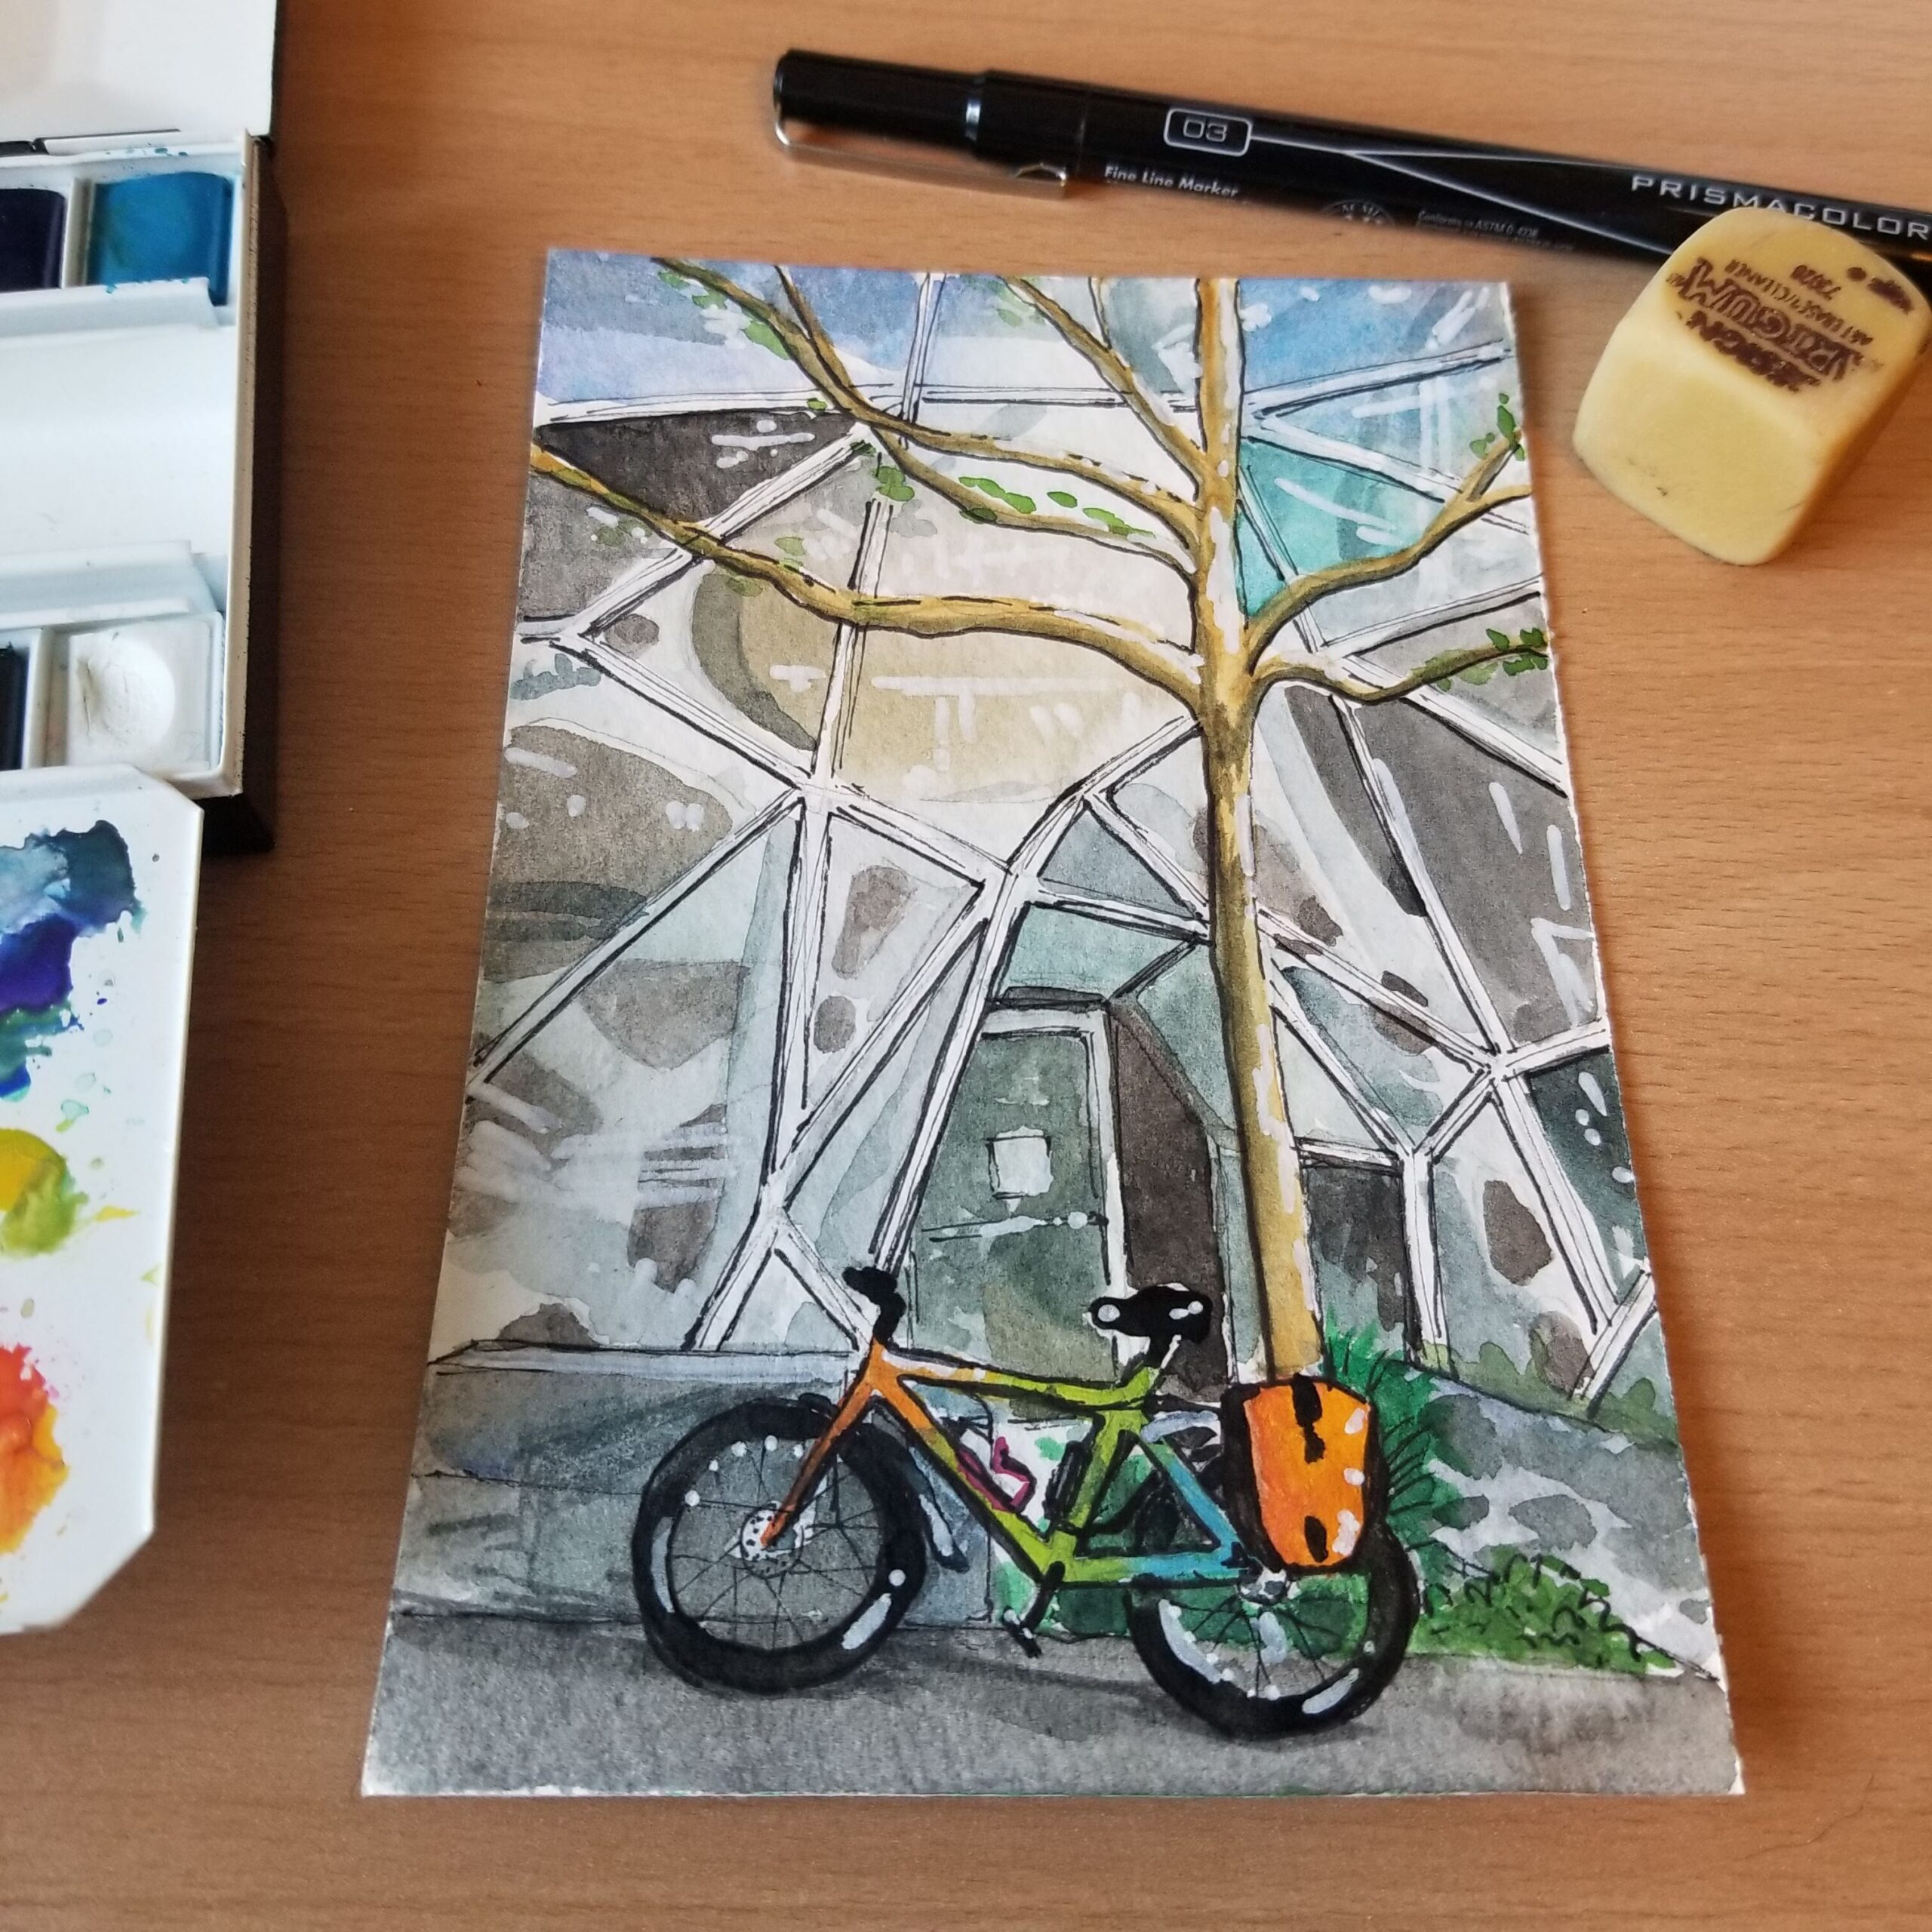 Watercolor postcard featuring a multi-colored commuter bike in front of the Amazon Spheres.